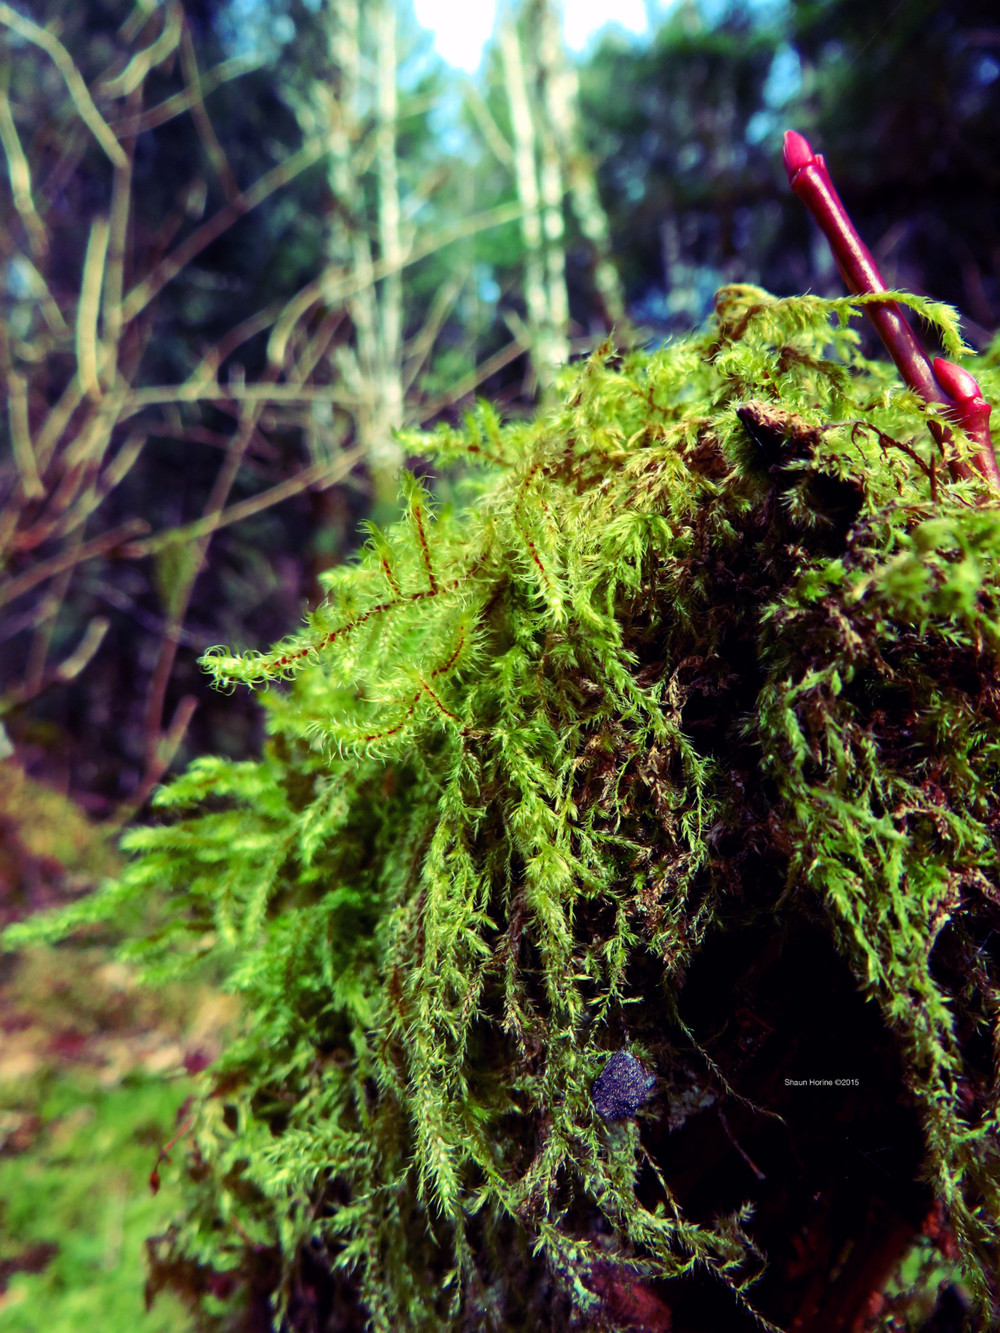 A close-up shot of some gnarly moss on a log. March 1st, 2015